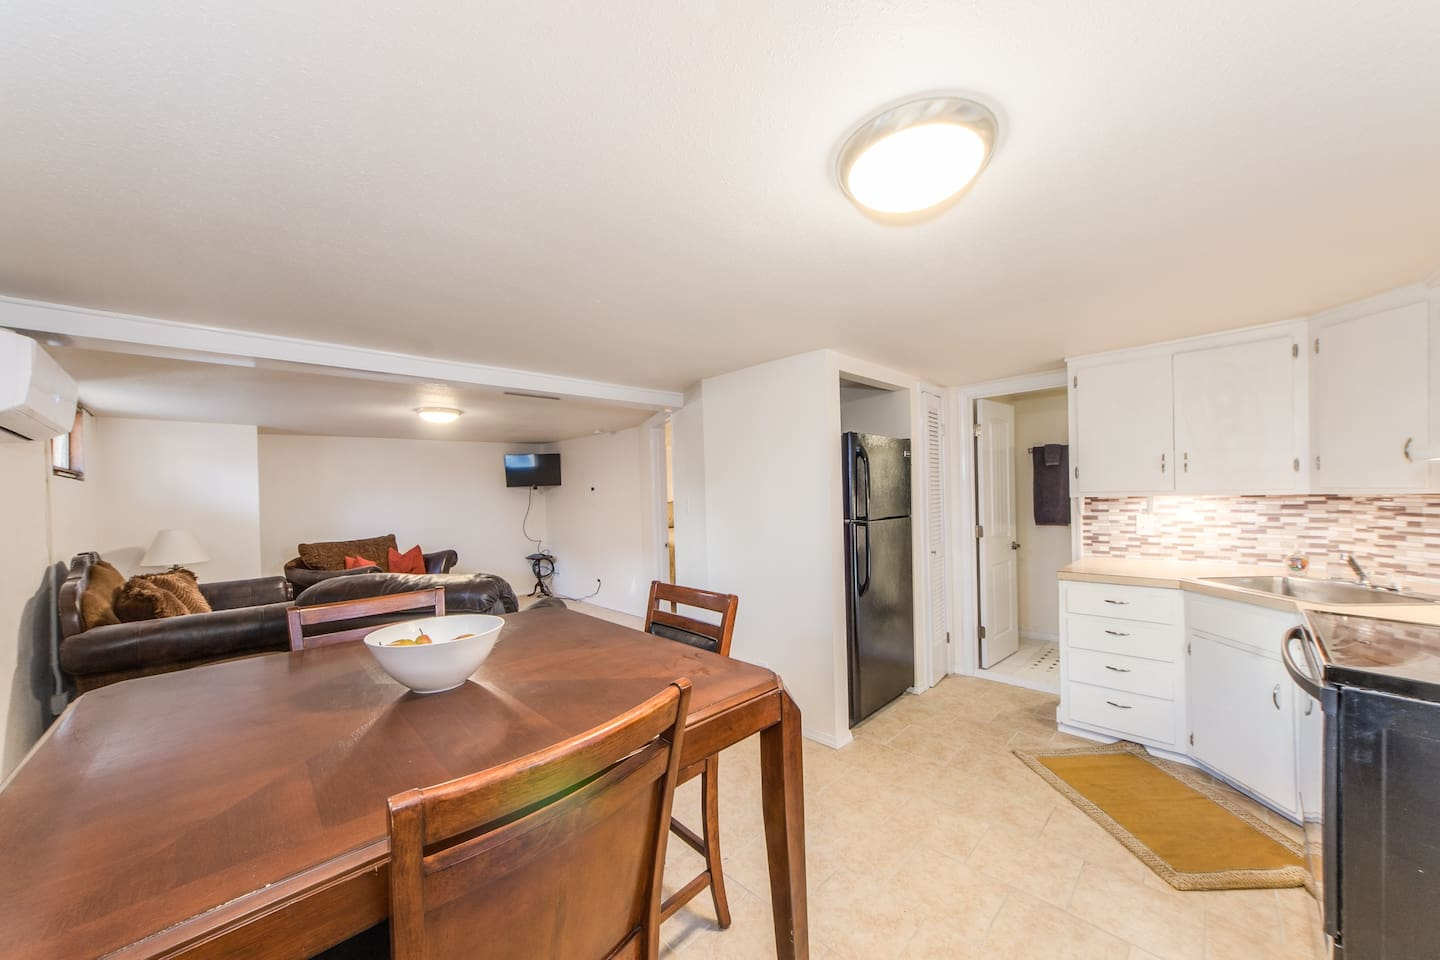 Basement apartment creating an airbnb worthy basement with basement - Basement Flat In Vintage Neighborhood Apartments For Rent In Tulsa Oklahoma United States